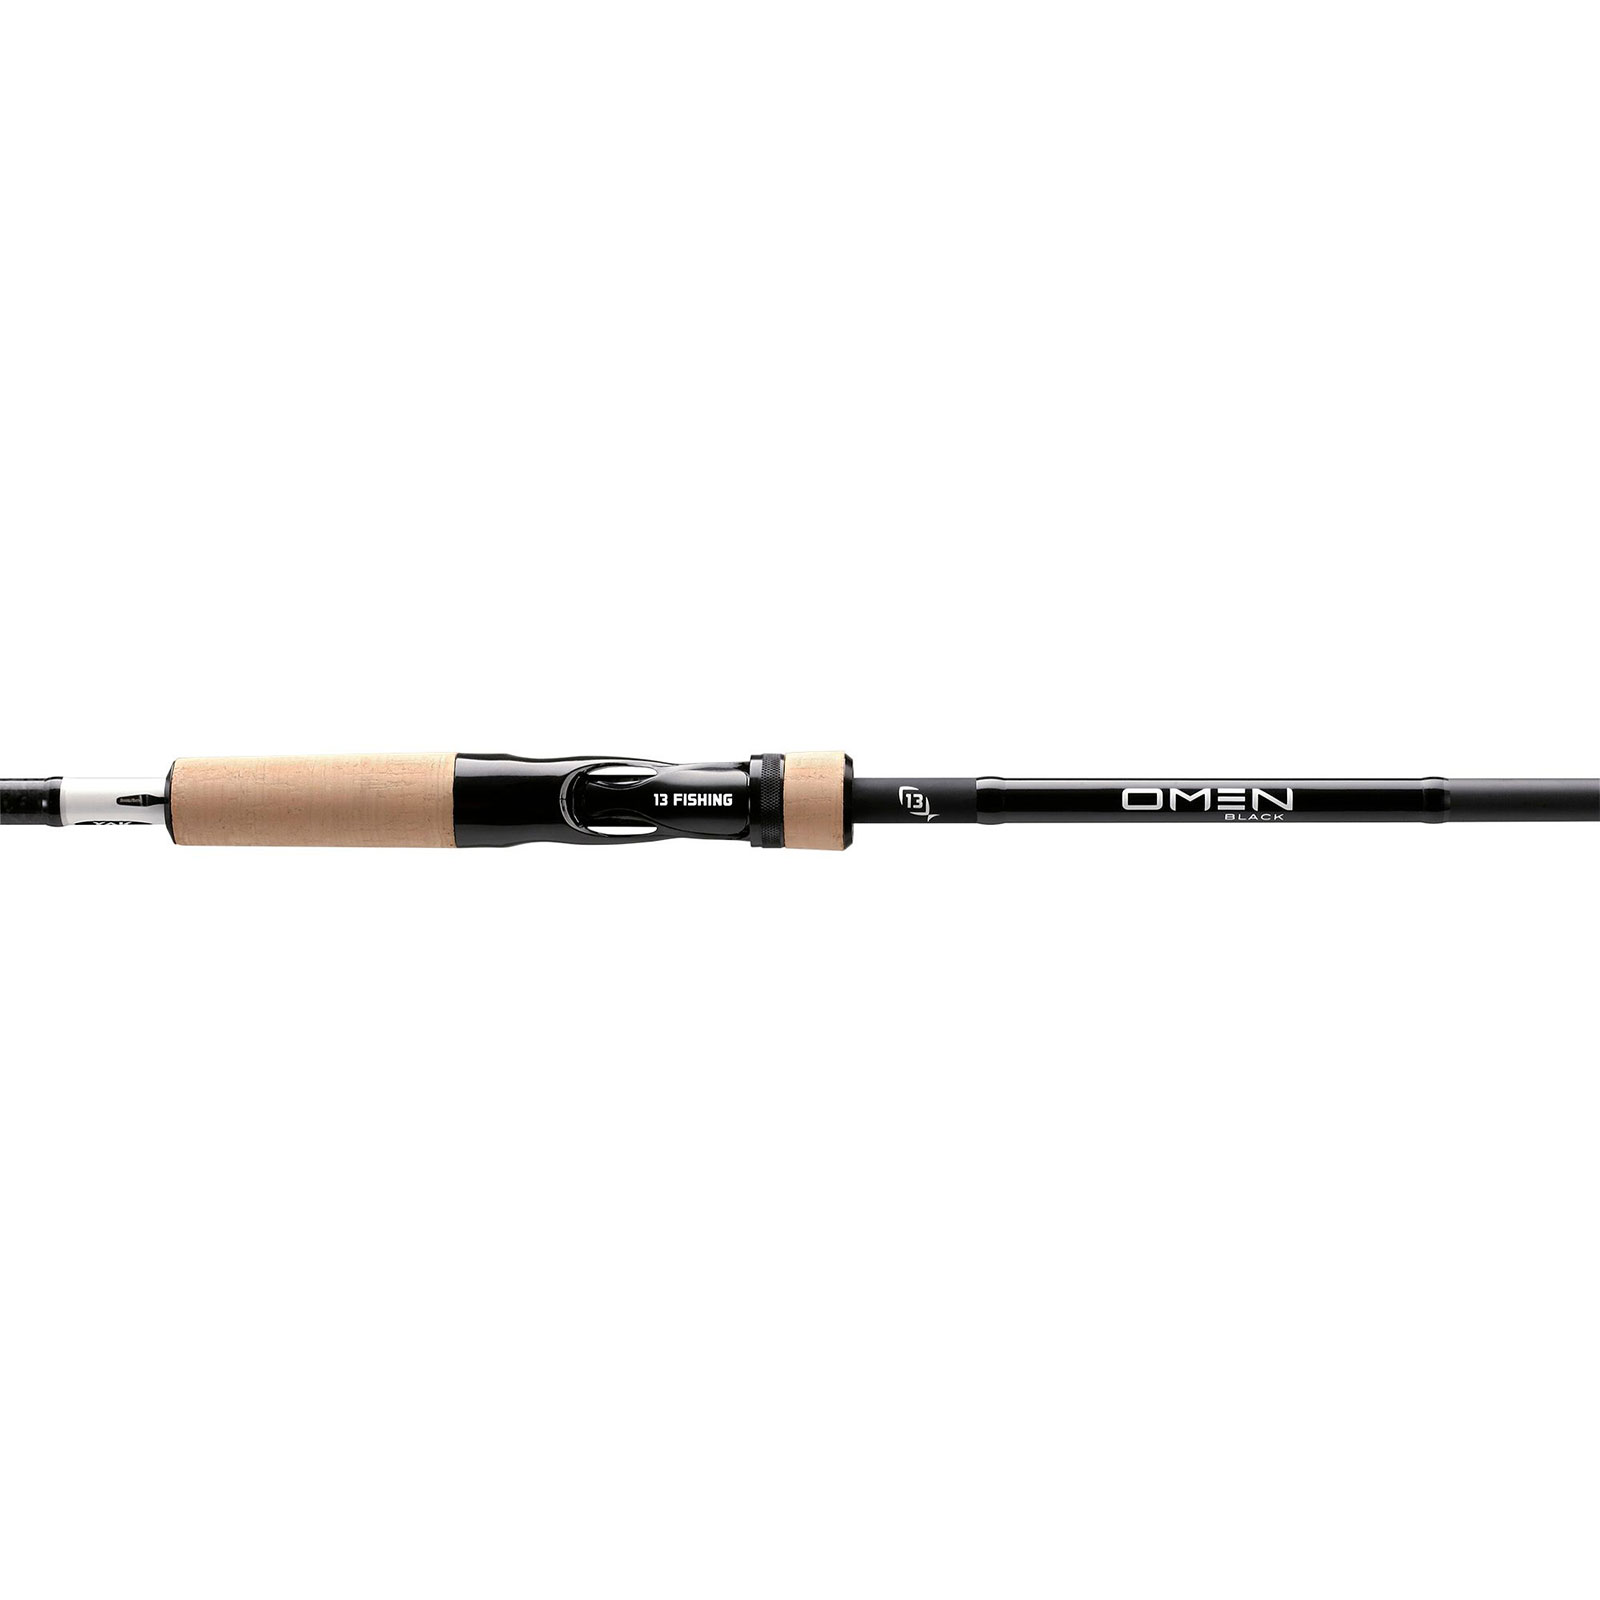 13 Fishing Omen Black 3 Kayak Casting Rod handle with logo